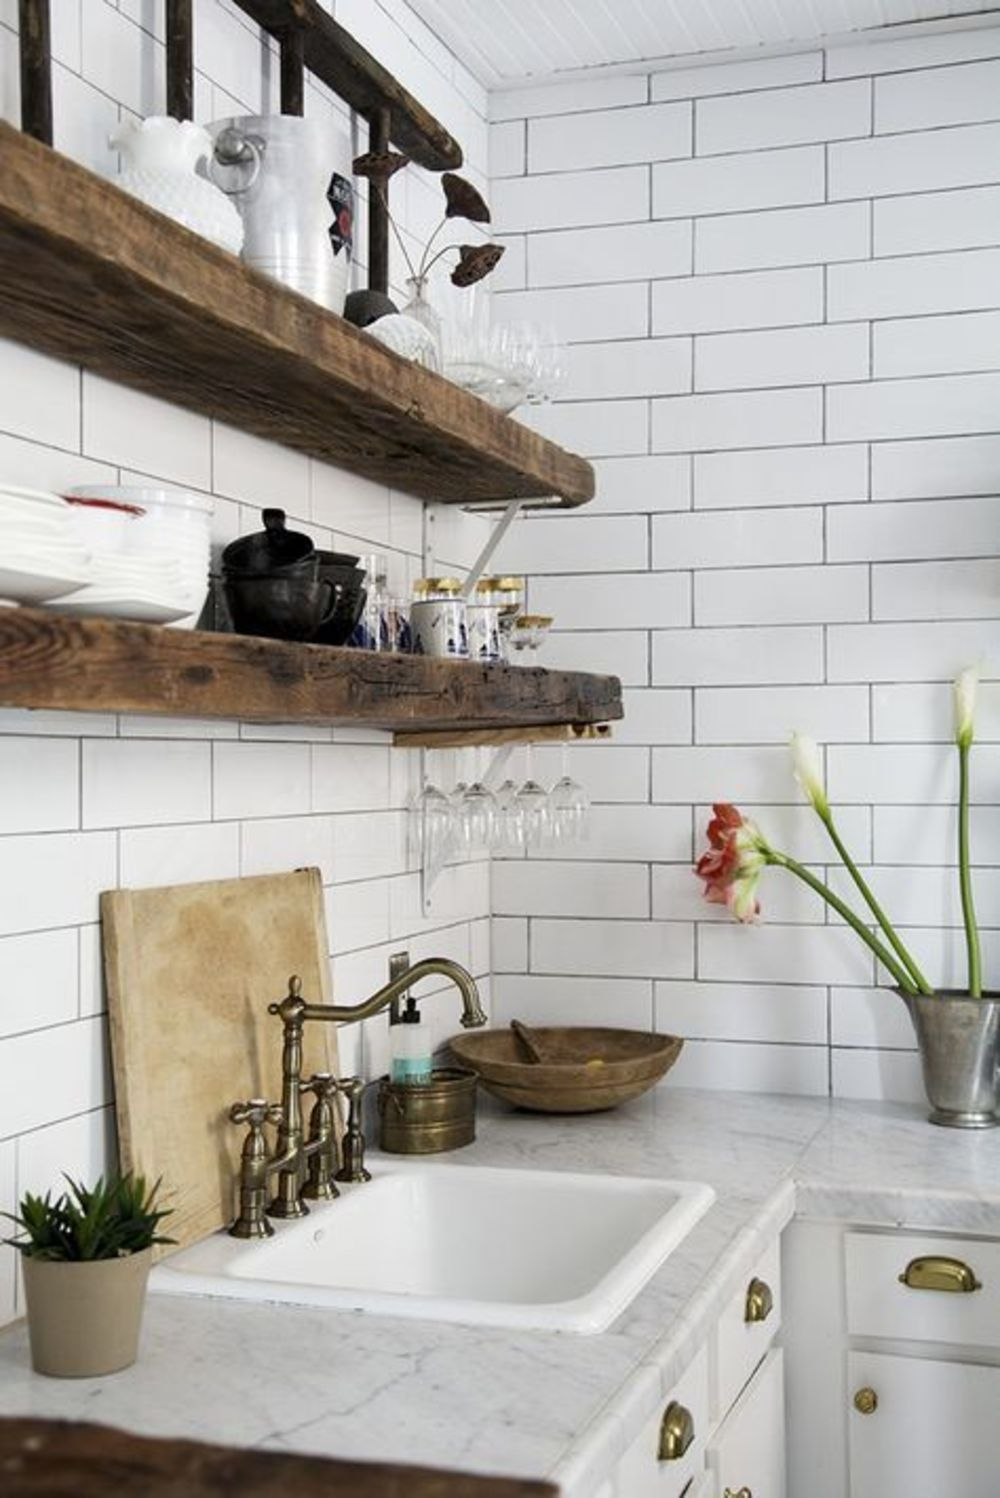 Rustic shelves white subway tile greywhite marble counters rustic shelves white subway tile greywhite marble counters dailygadgetfo Images